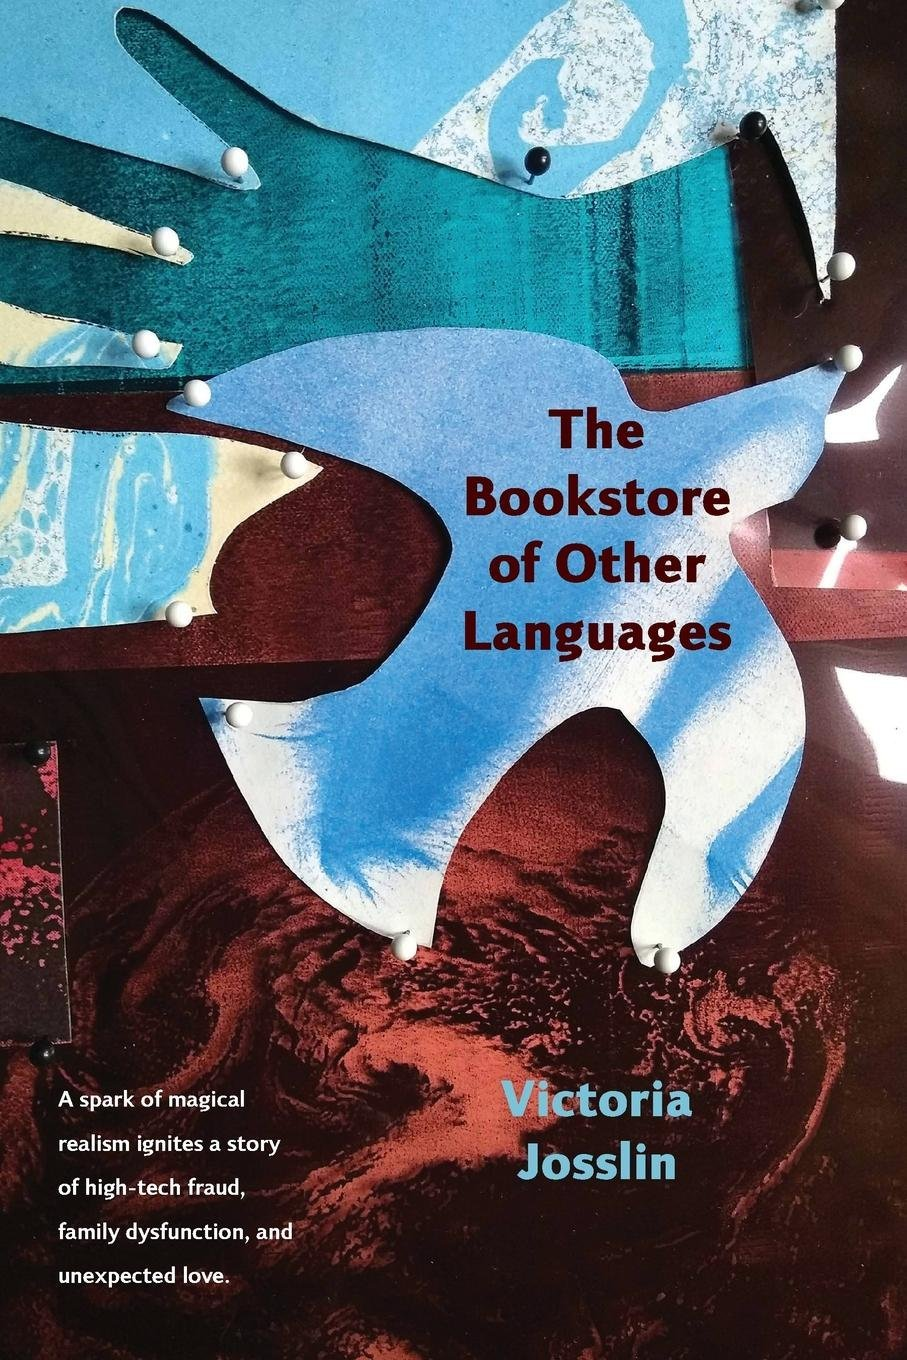 The Bookstore of Other Languages by Victoria Josslin